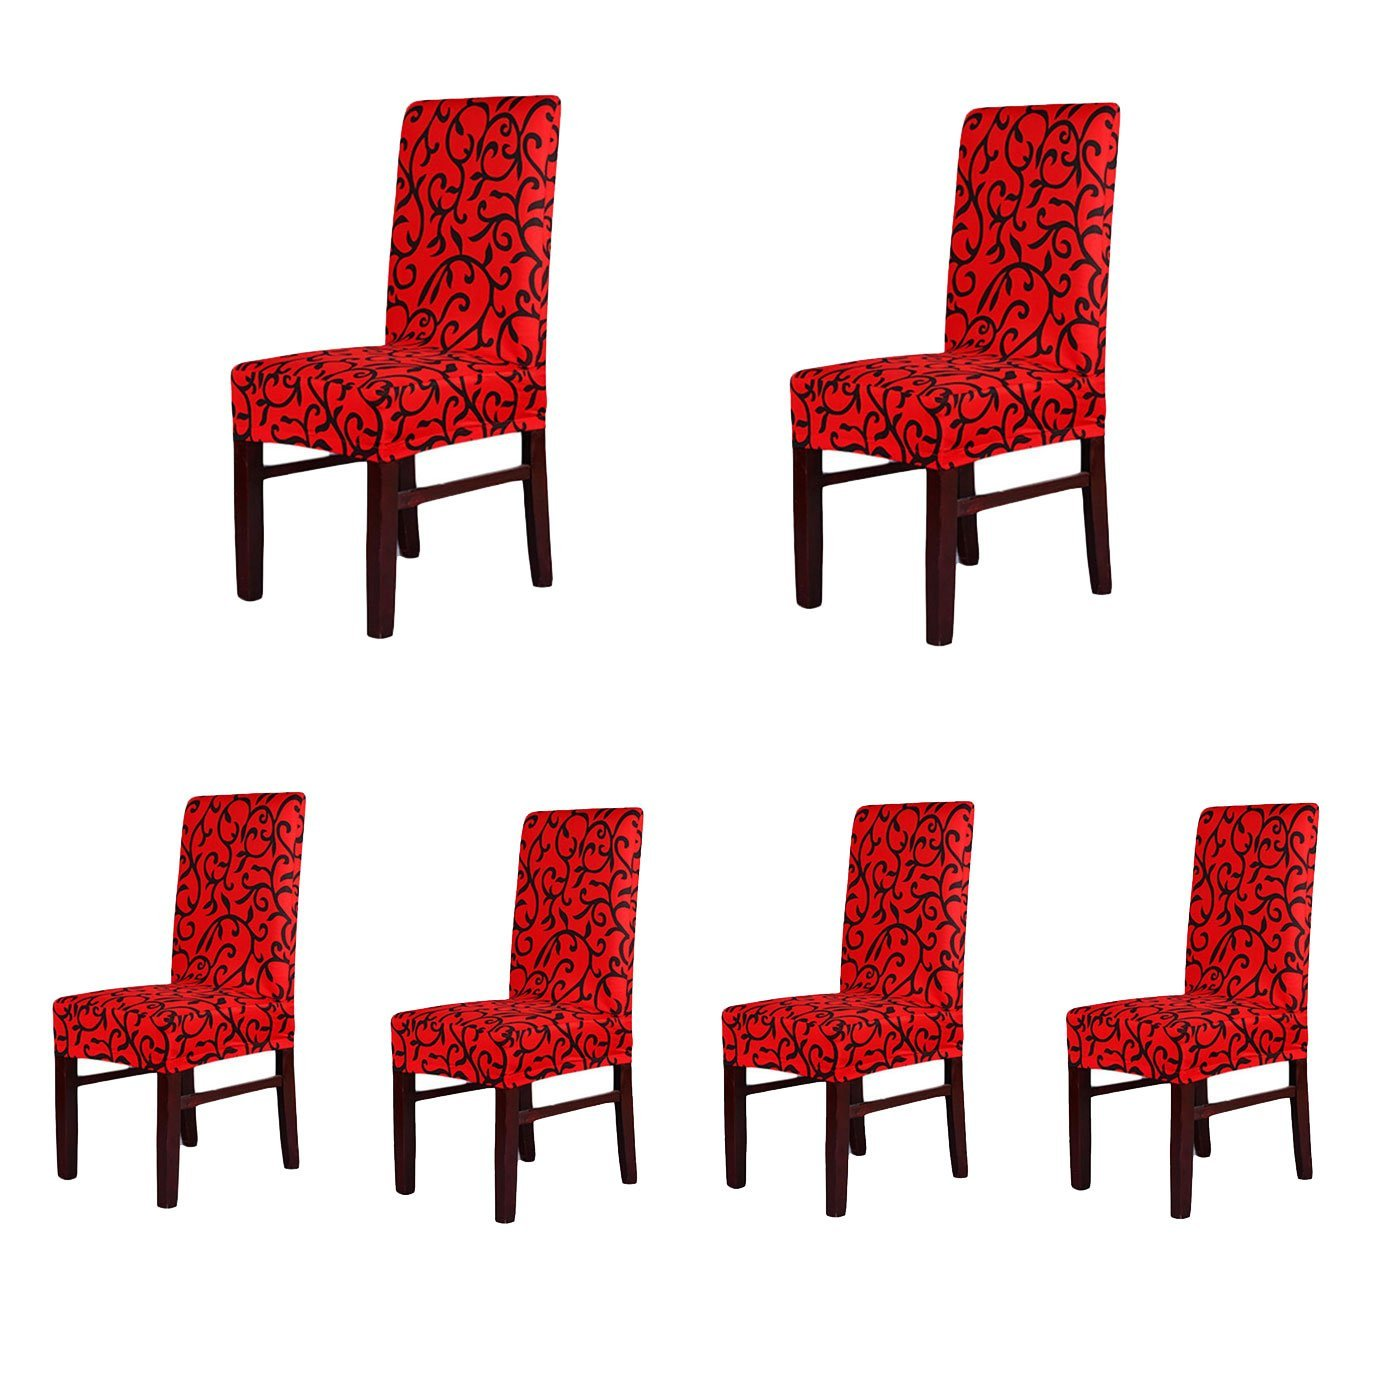 (Redblack) - 6 x Soft Fit Stretch Short Dining Room Chair Covers, Printed Pattern, Banquet Chair Seat Protector Slipcover for Party Hotel Wedding Ceremony (RedBlack) レッドブラック B01CPE9V9Y